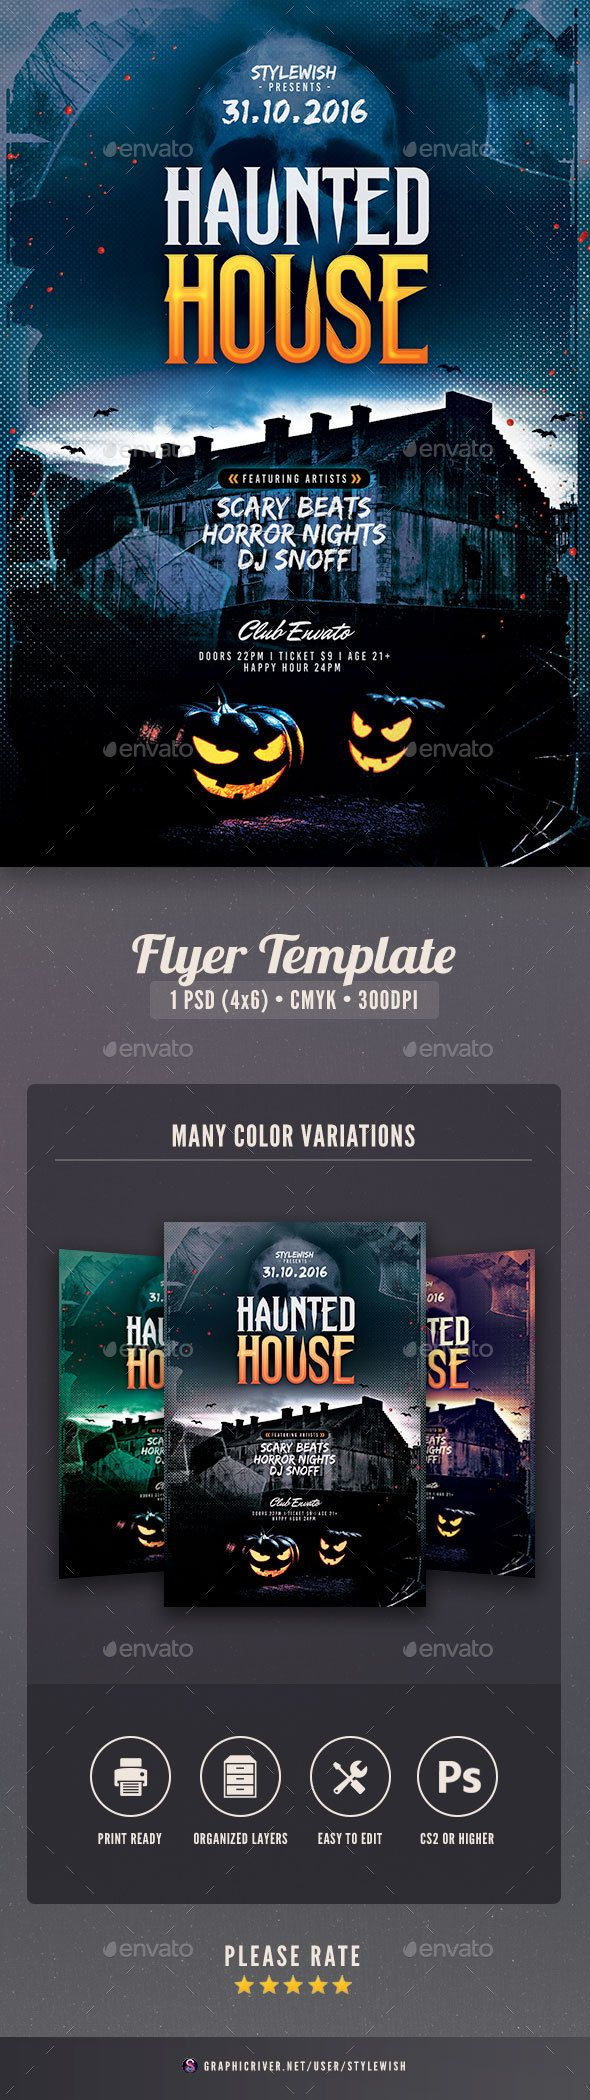 Haunted House Flyer | Haunted houses, Event flyers and Flyer template